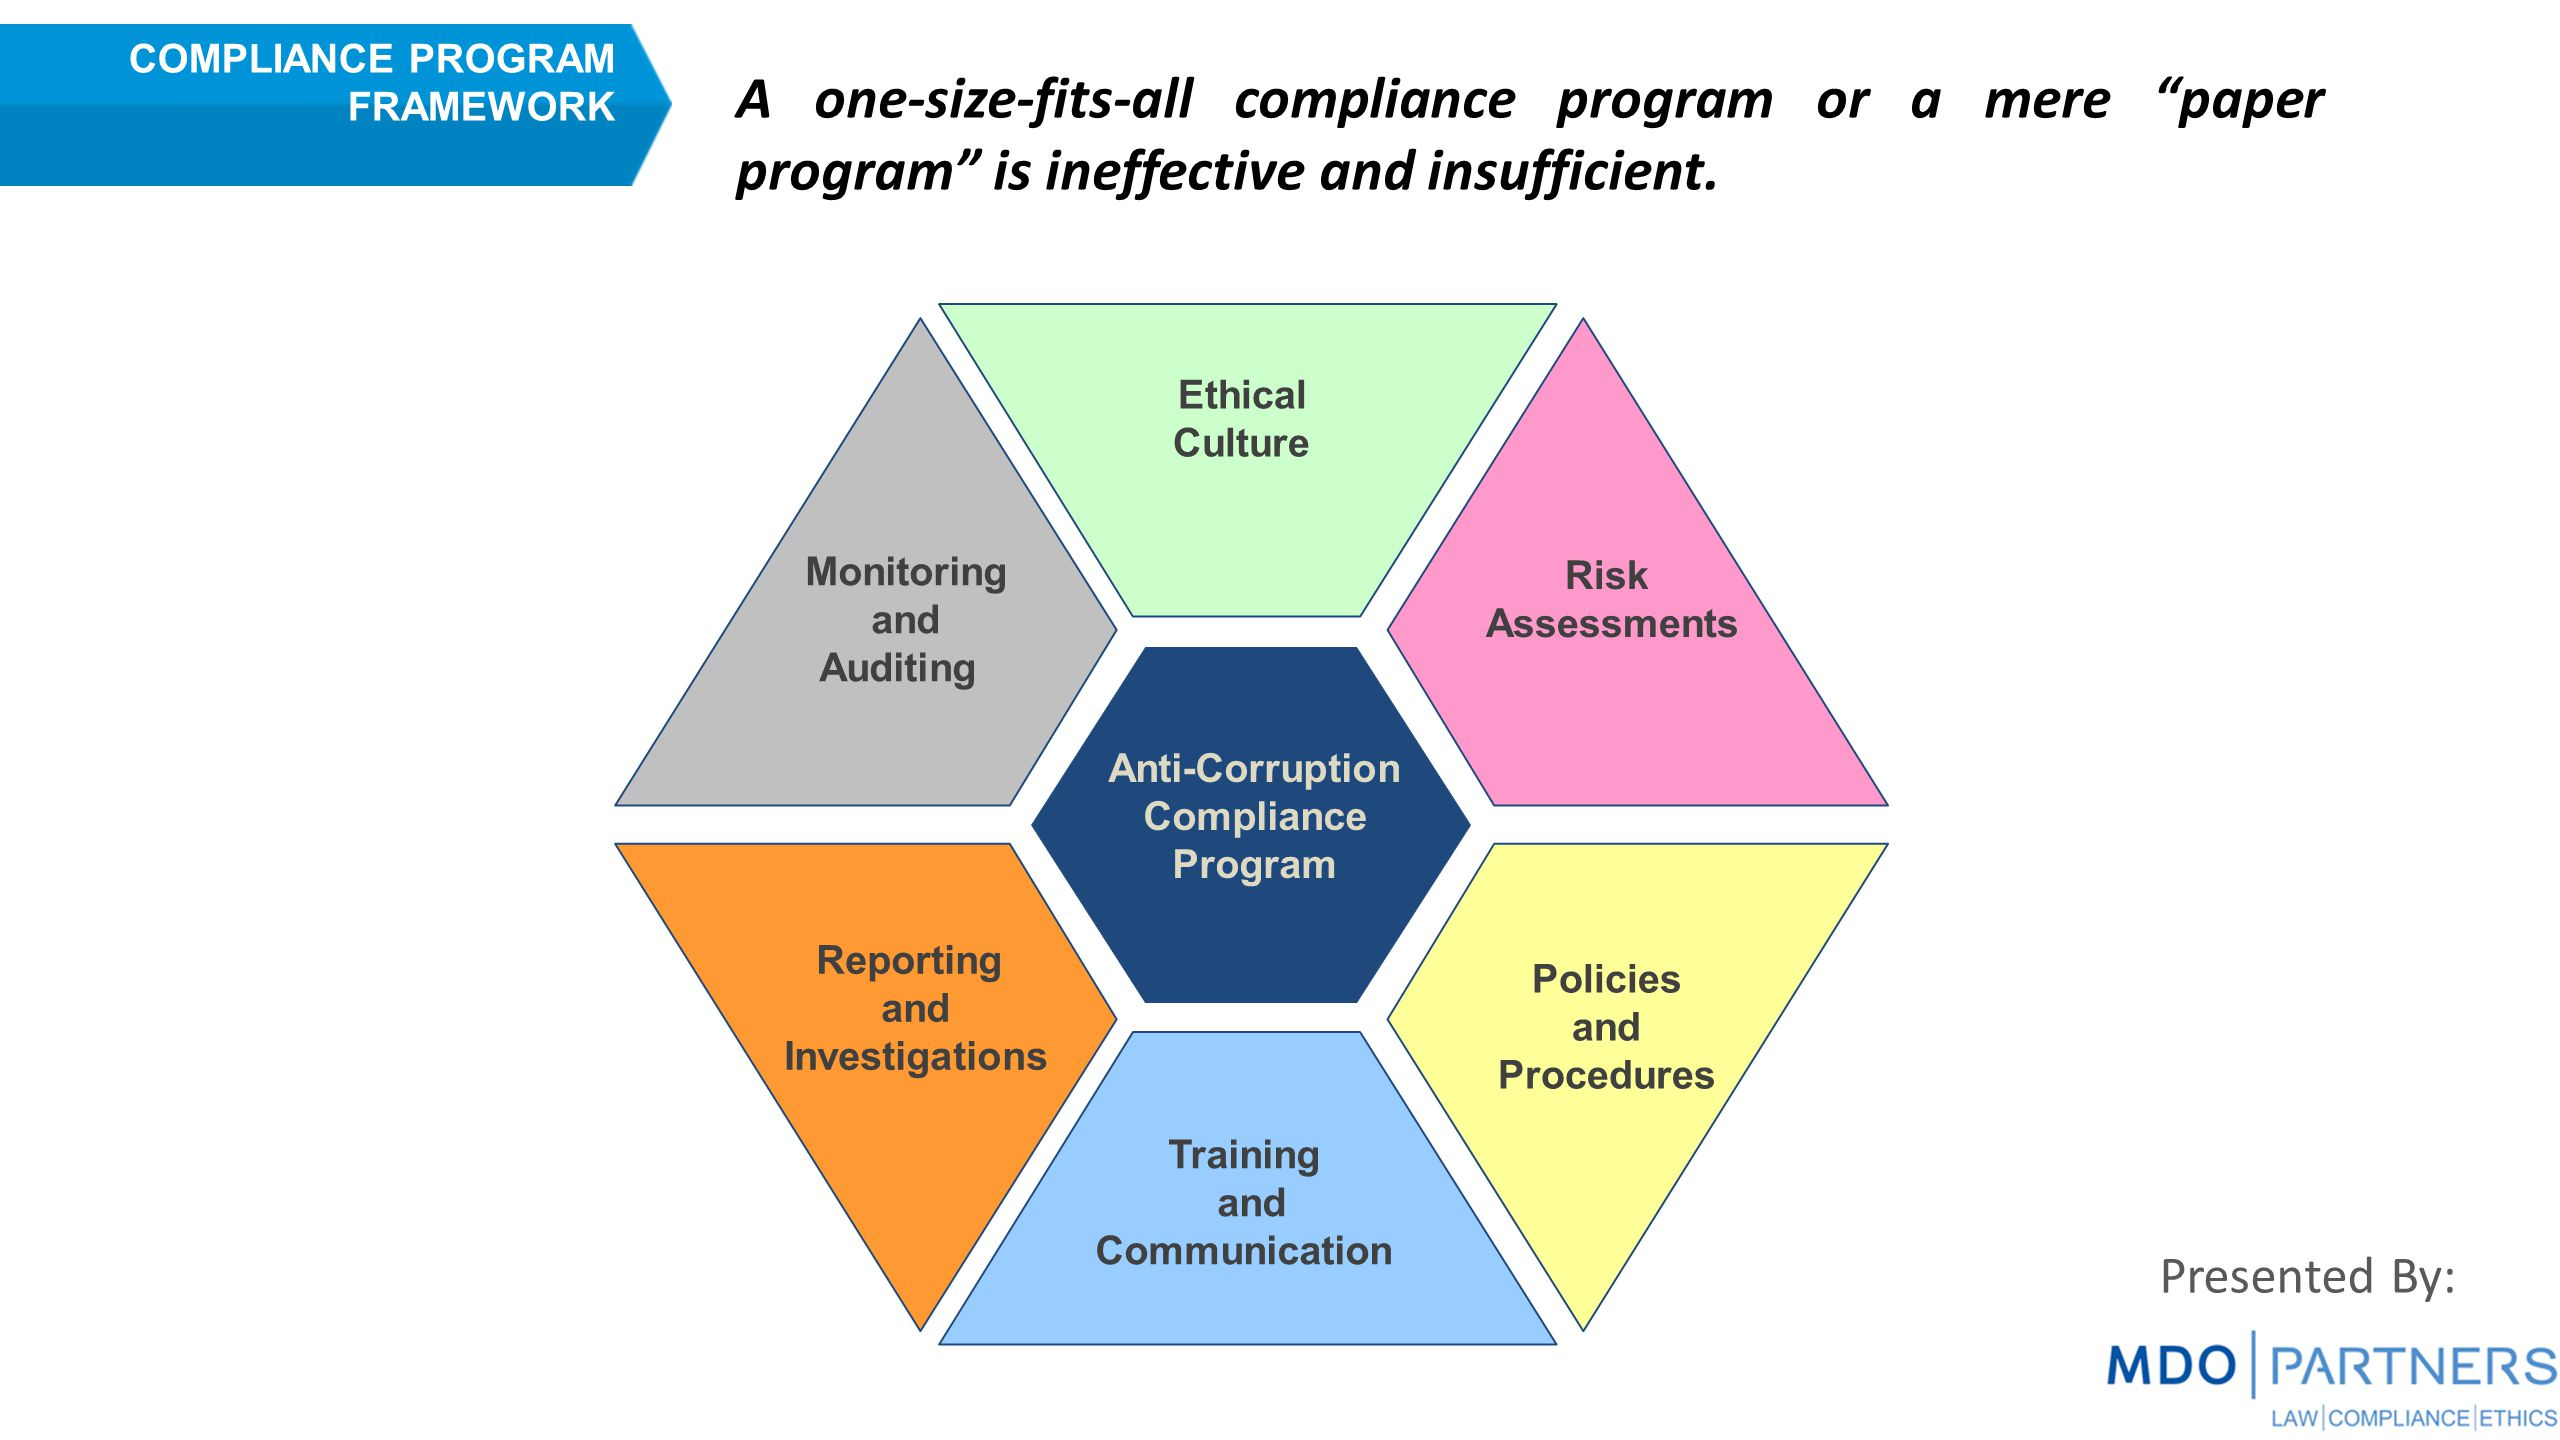 Ethical Culture Training and Communication Monitoring and Auditing Risk Assessments Reporting and Investigations Policies and Procedures Anti-Corruption Compliance Program COMPLIANCE PROGRAM FRAMEWORK A one-size-fits-all compliance program or a mere paper program is ineffective and insufficient.